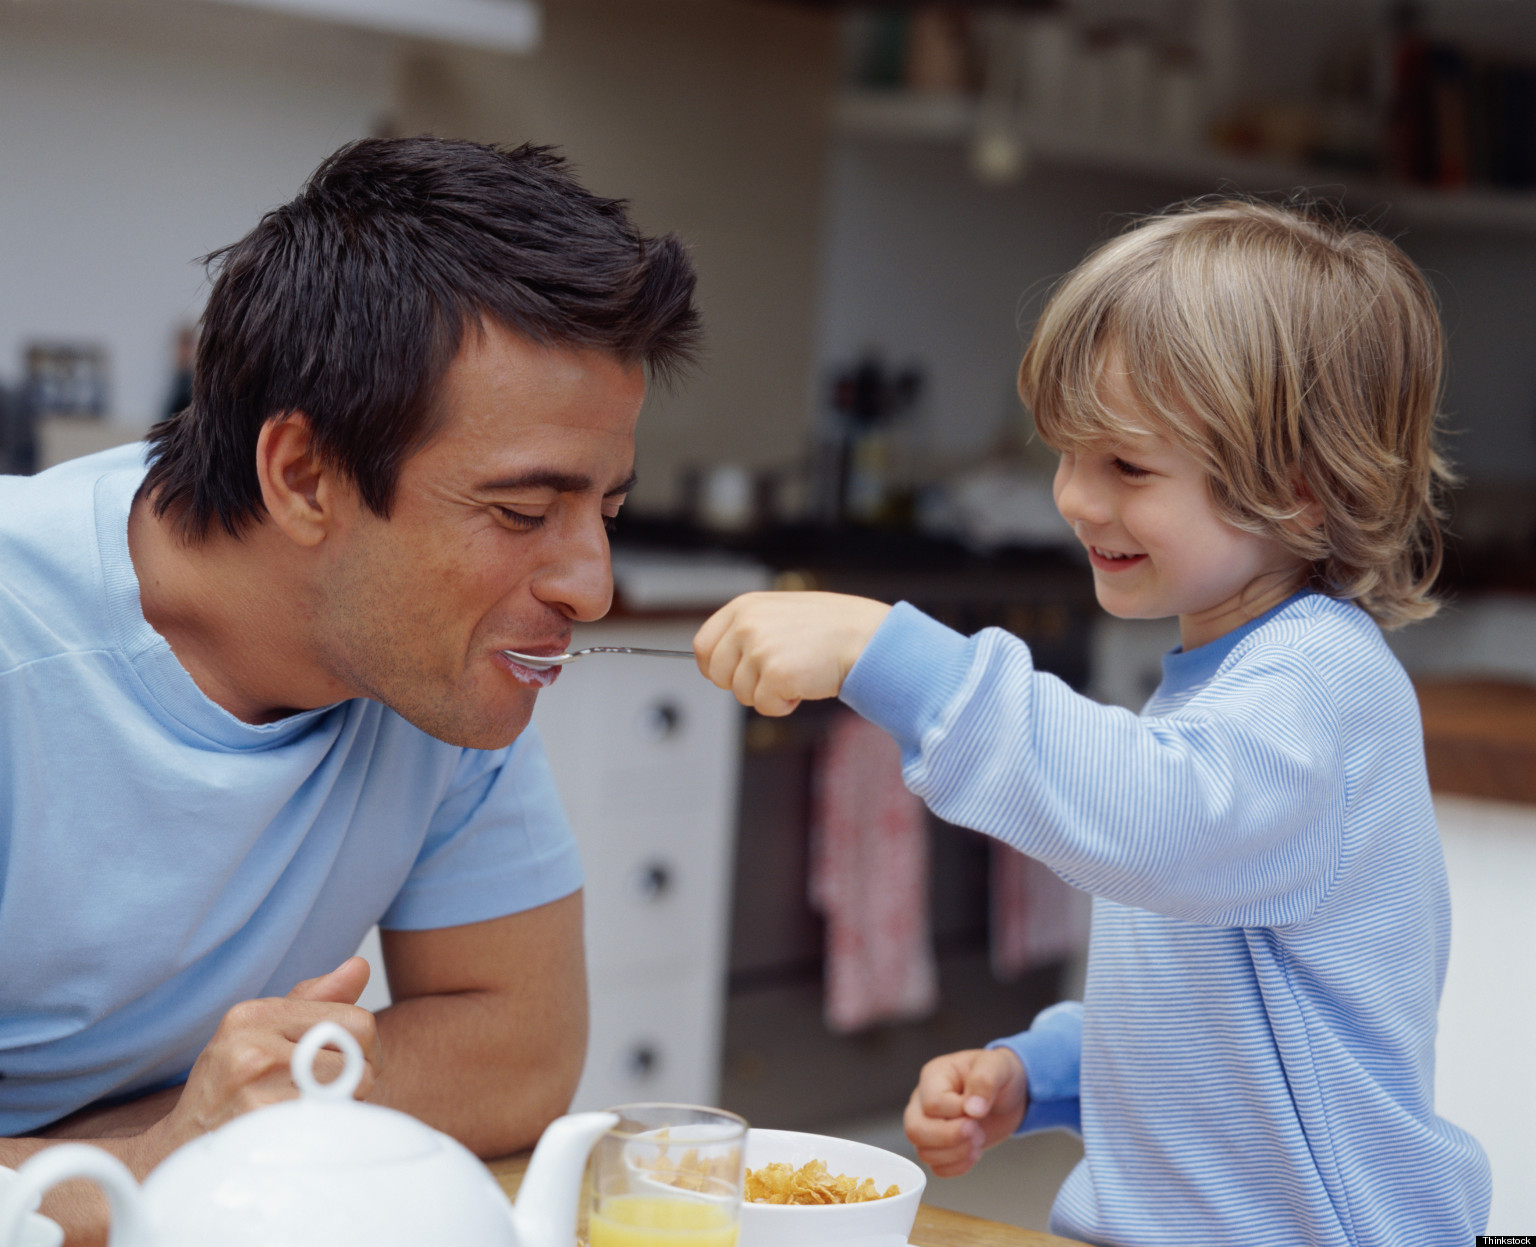 FatherSon Relationships The Things Every Boy Needs From His Dad  HuffPost